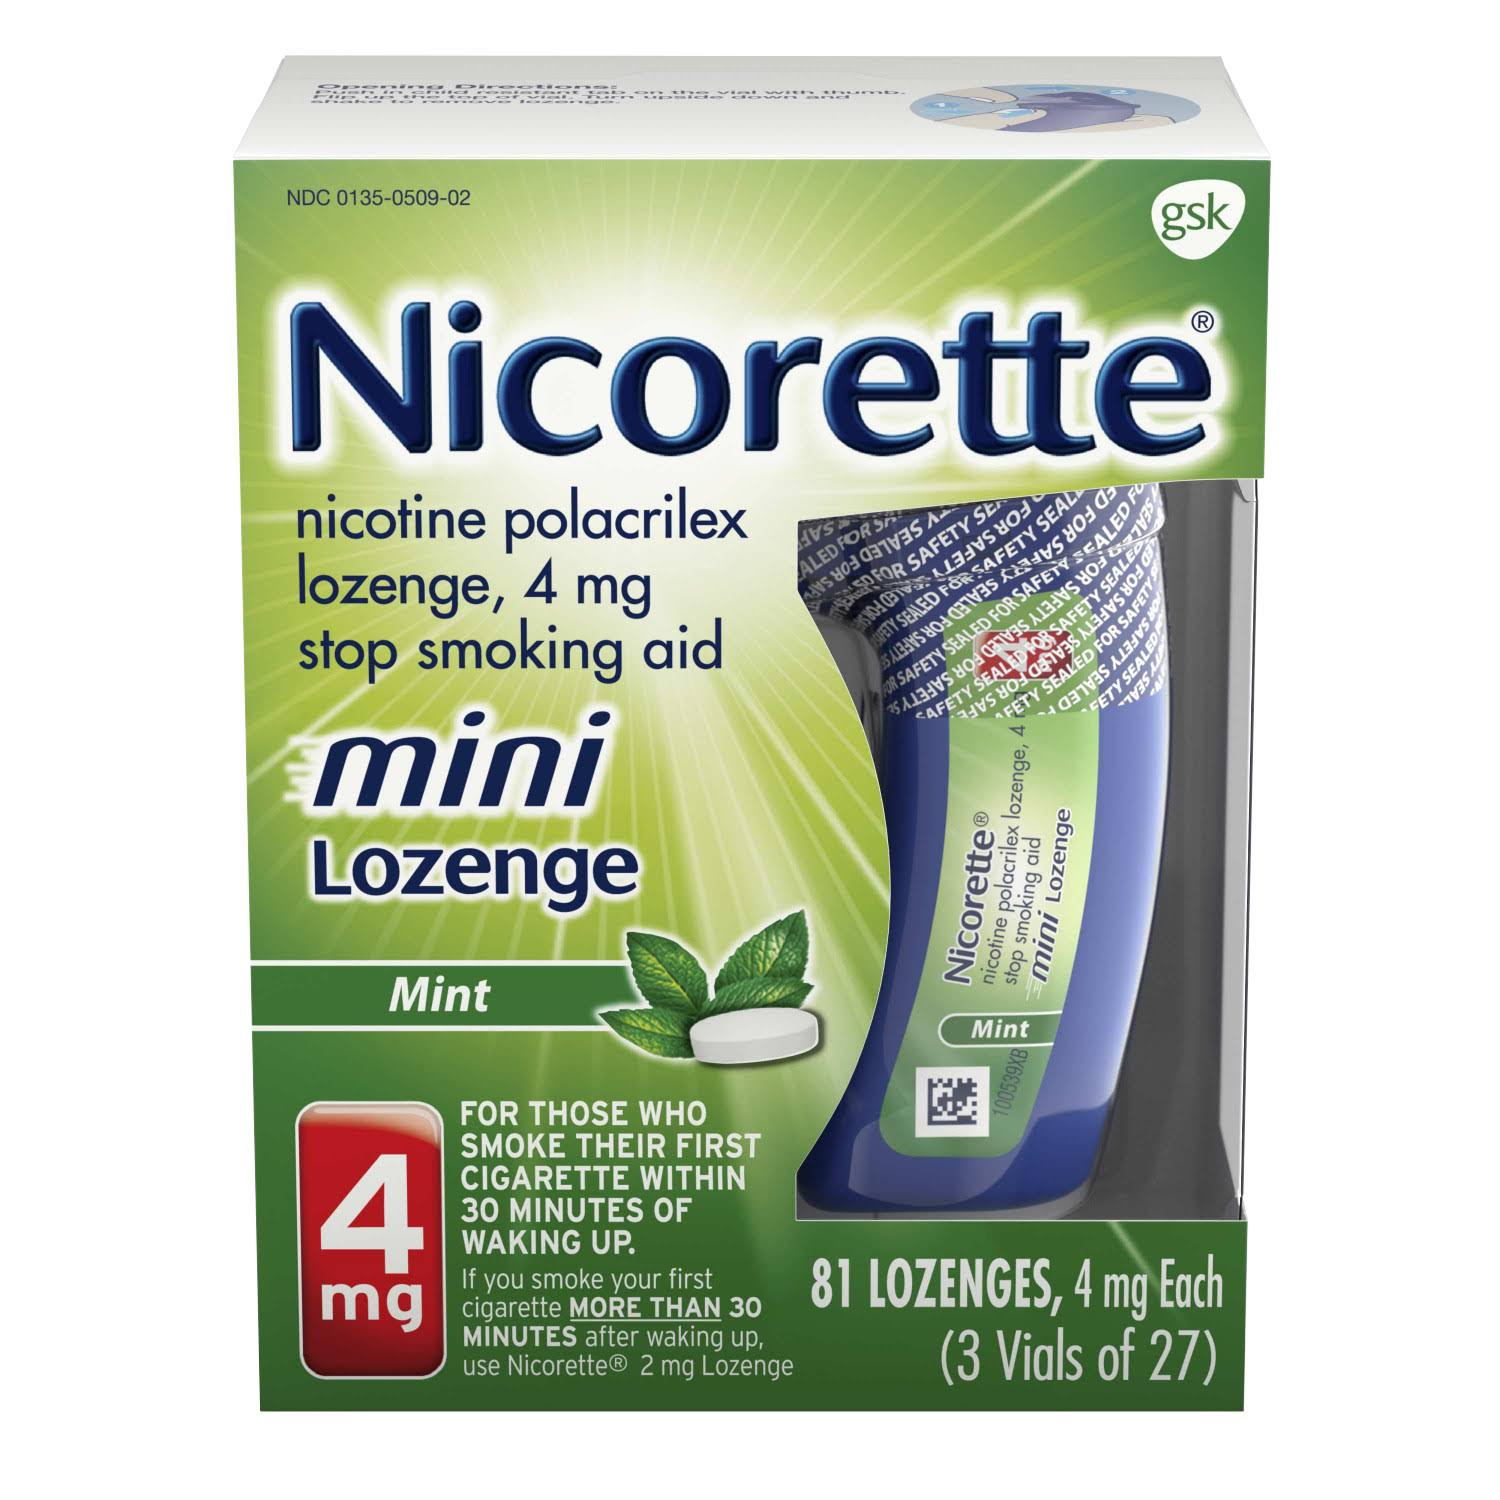 Gsk Nicorette Mini Lozenges - Mint, 4mg, 81ct